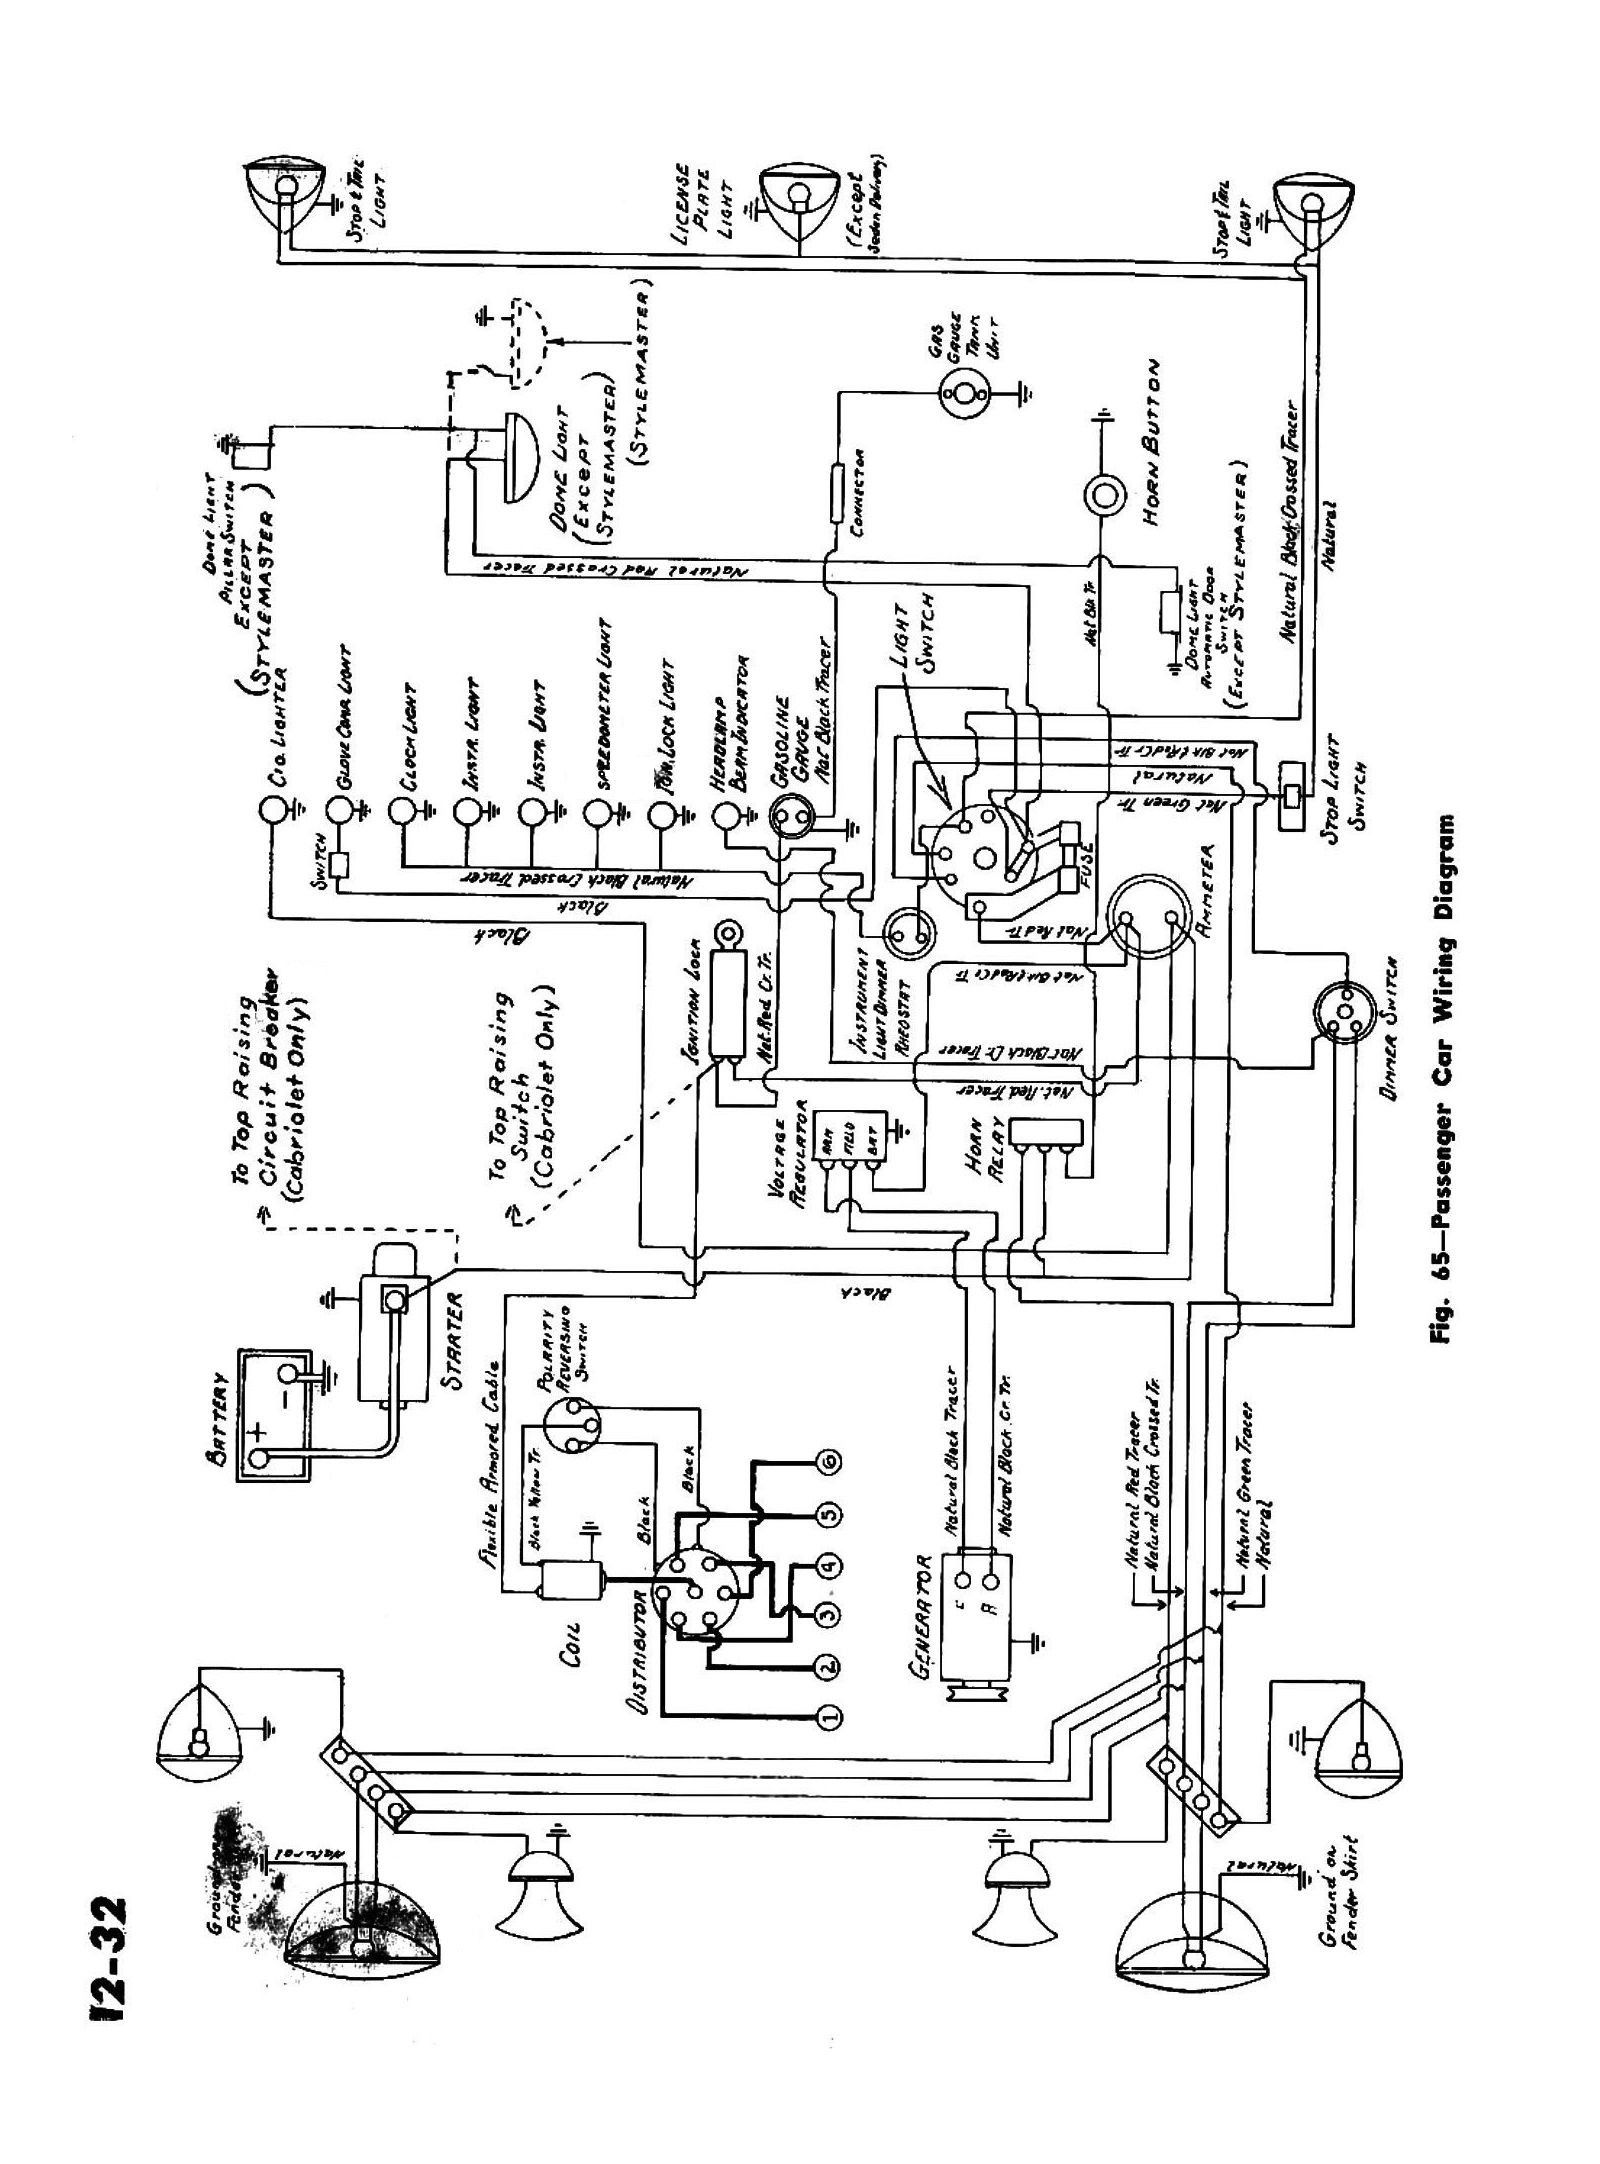 [SCHEMATICS_4US]  19 Stunning Free Auto Wiring Diagrams For You ,  https://bacamajalah.com/19-stunning-free-auto-wiring-diagr… | Electrical wiring  diagram, Electrical diagram, Diagram | Basic Car Wiring Diagram |  | Pinterest